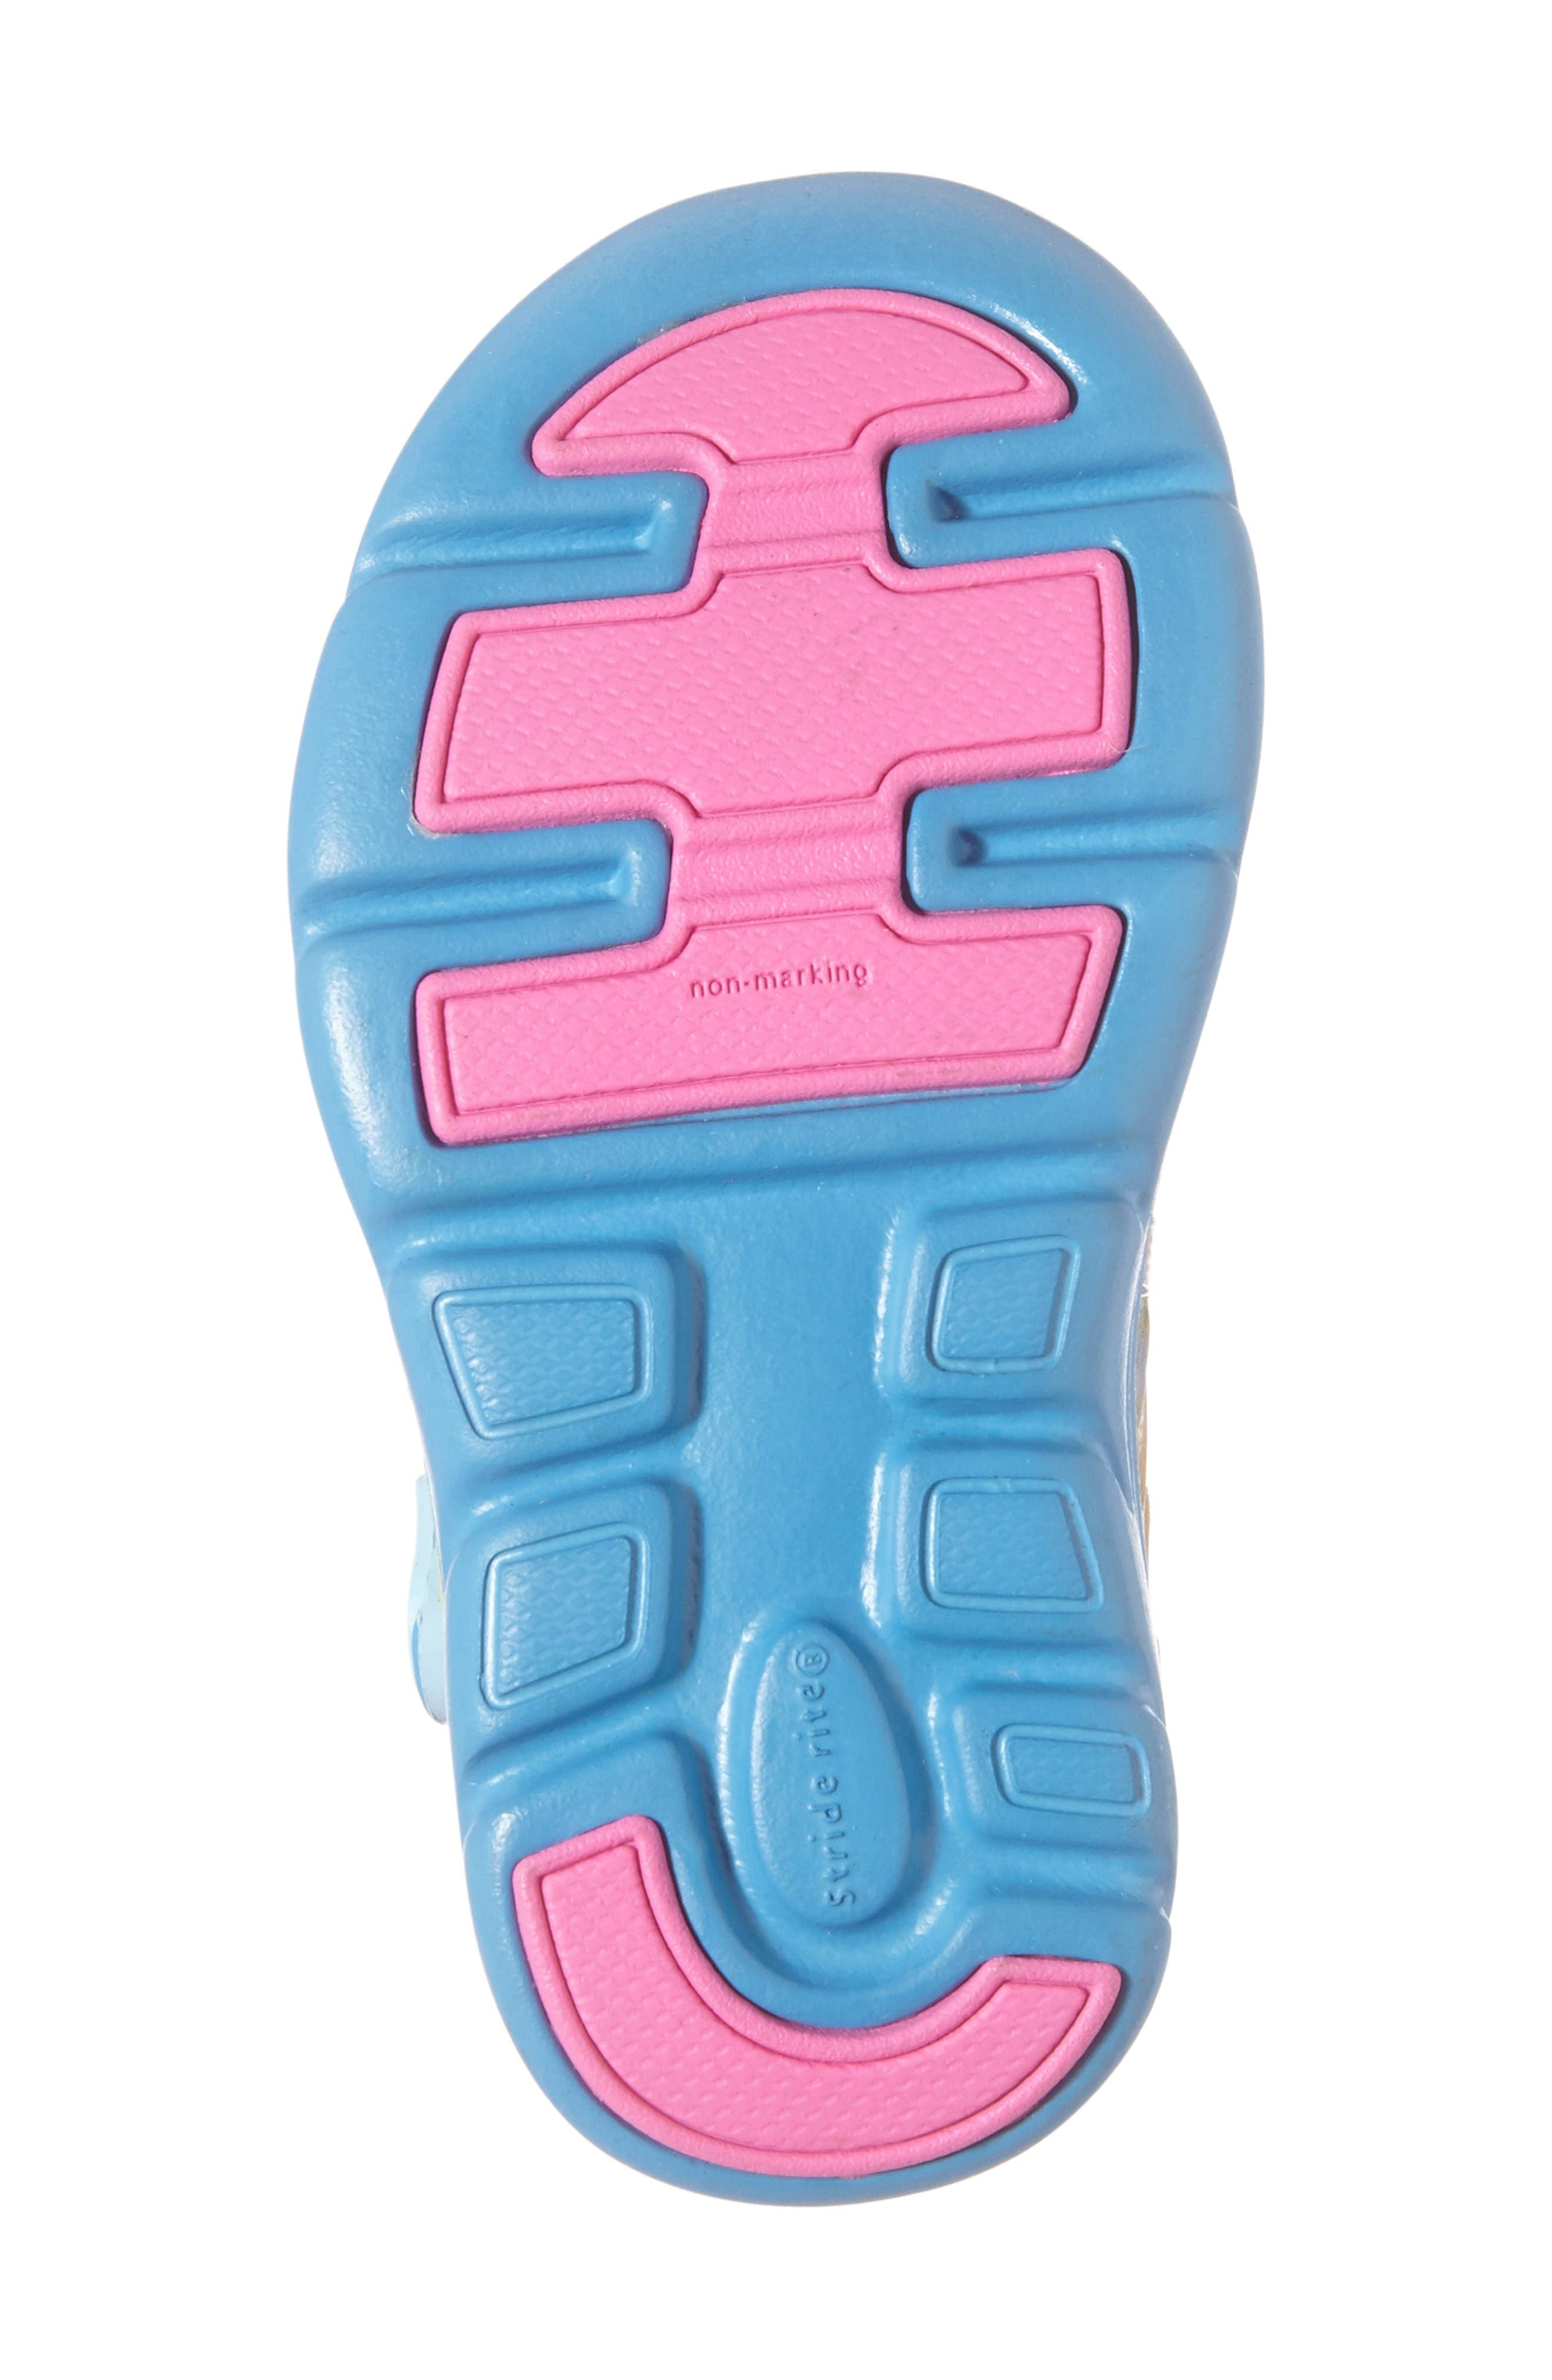 Made2Play<sup>®</sup> My Little Pony<sup>™</sup> Phibian Sneaker,                             Alternate thumbnail 6, color,                             Rainbow Turquoise